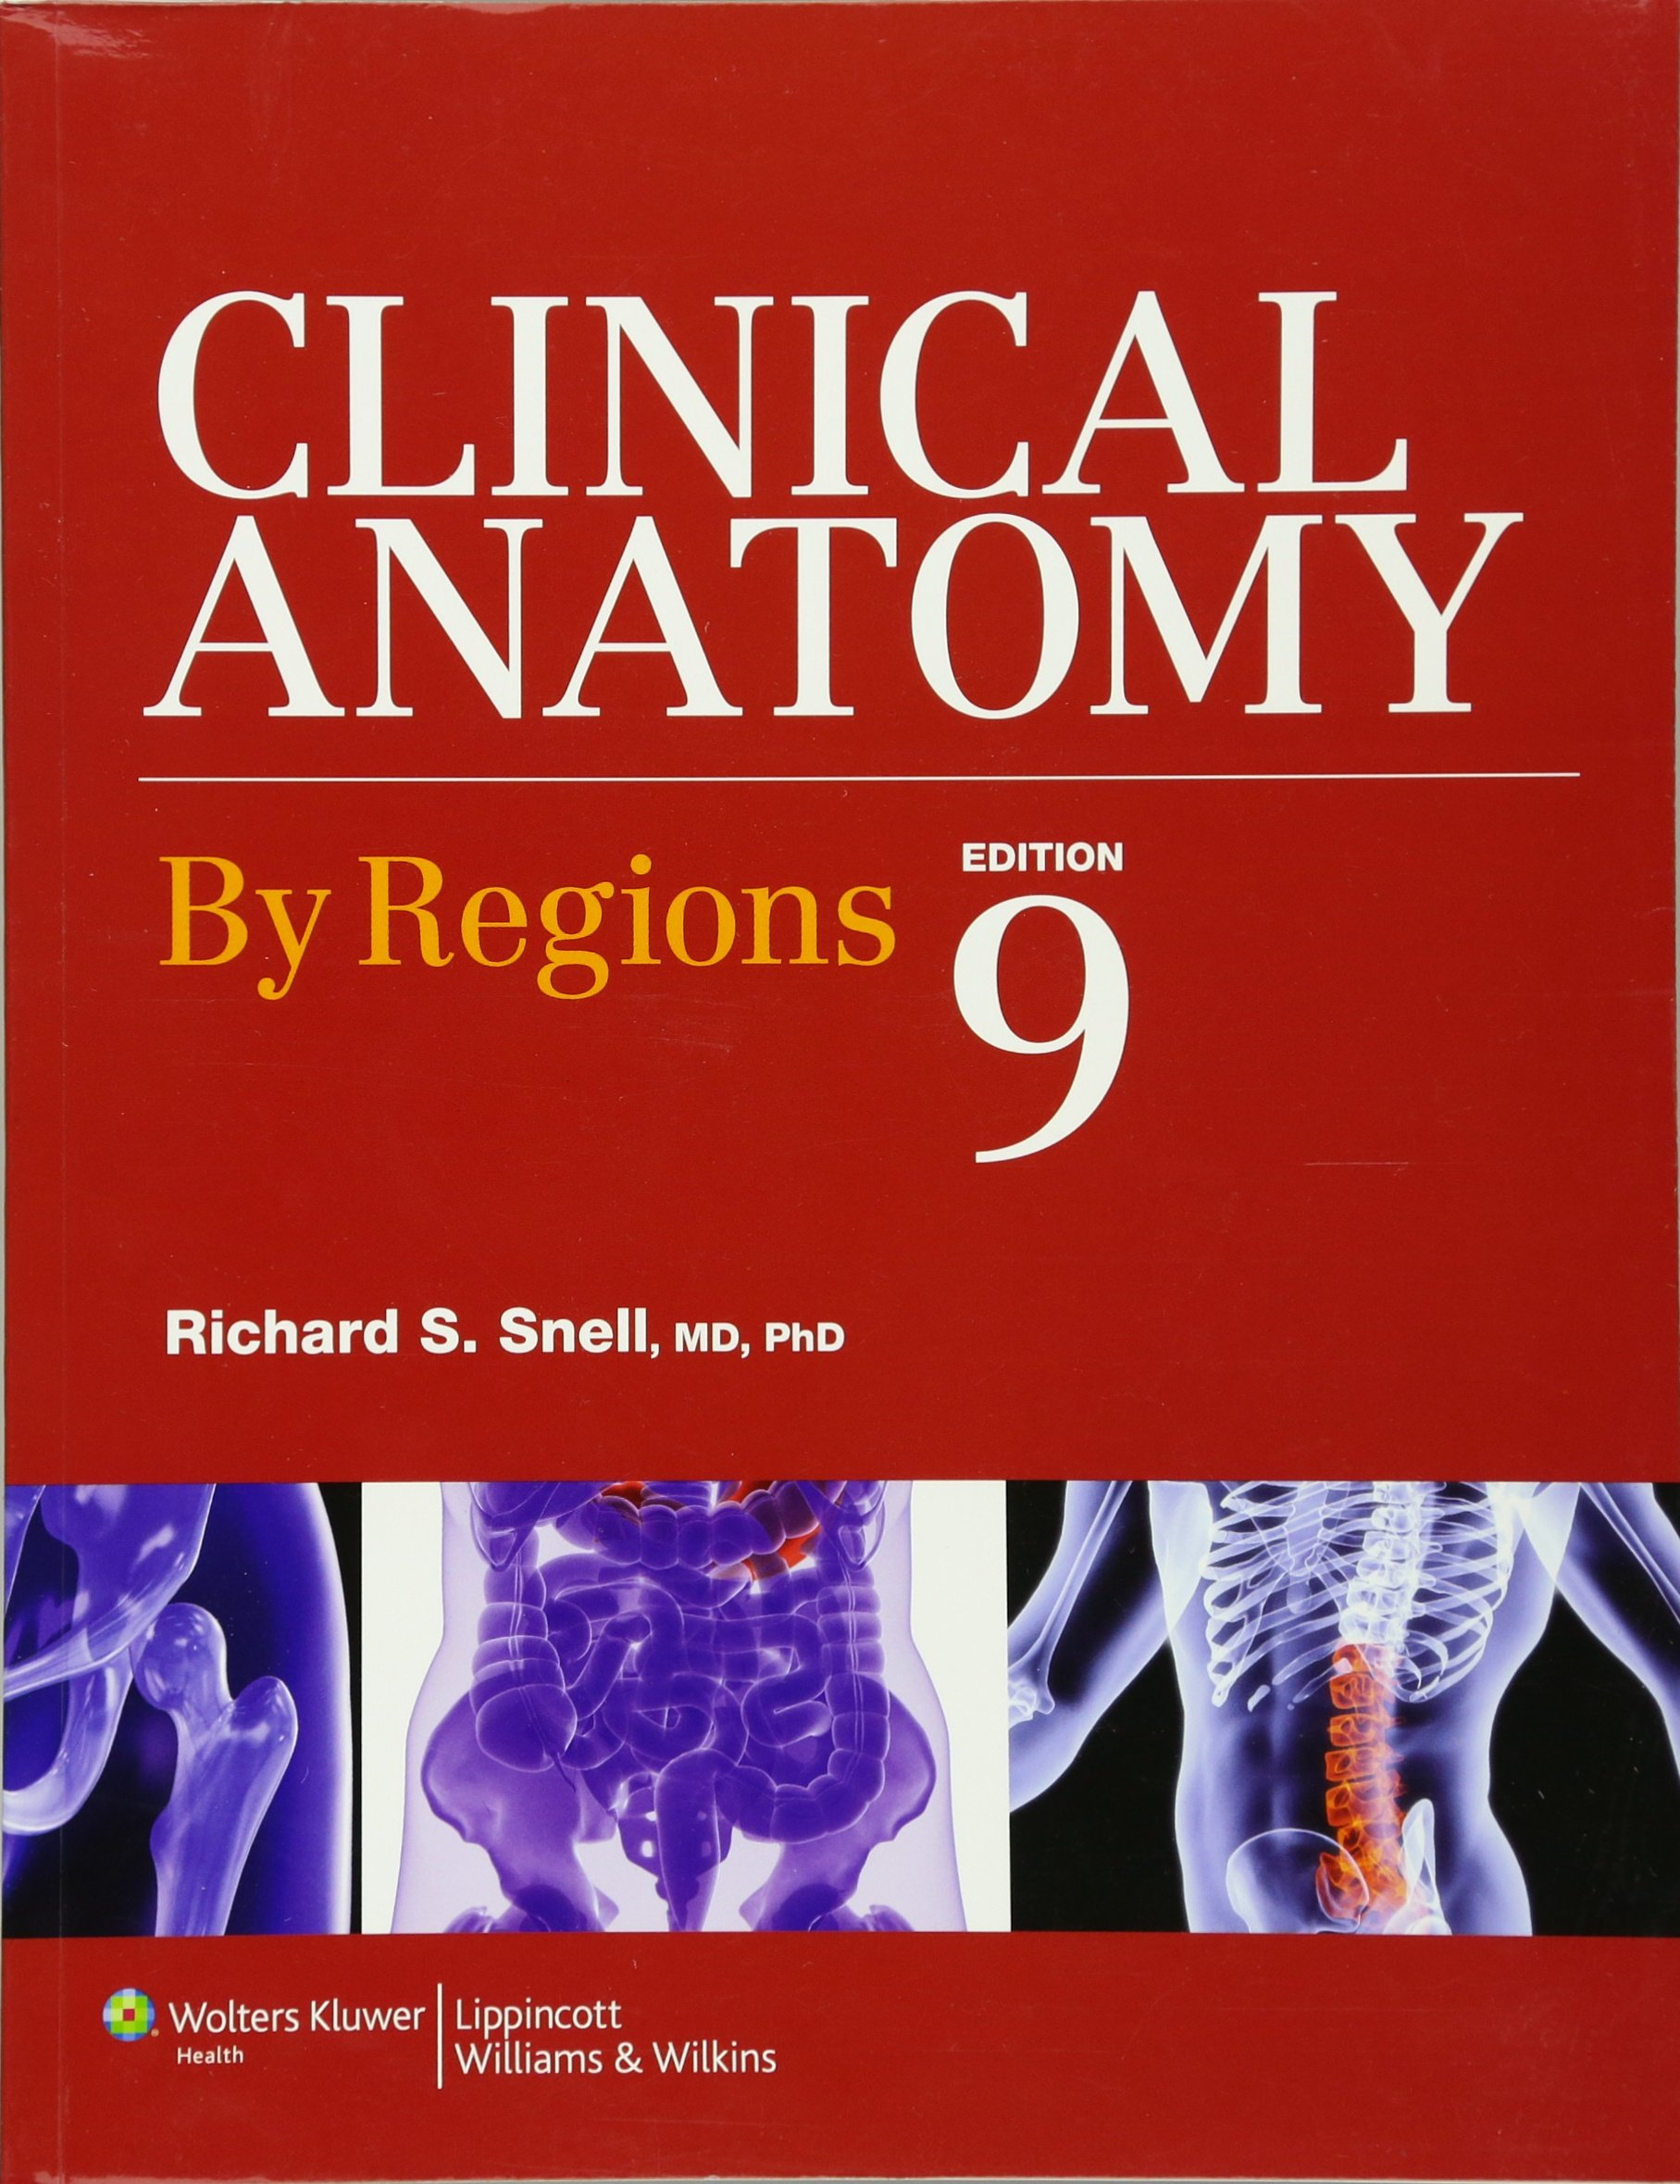 Clinical Anatomy By Regions (International Edition): Amazon.co.uk ...